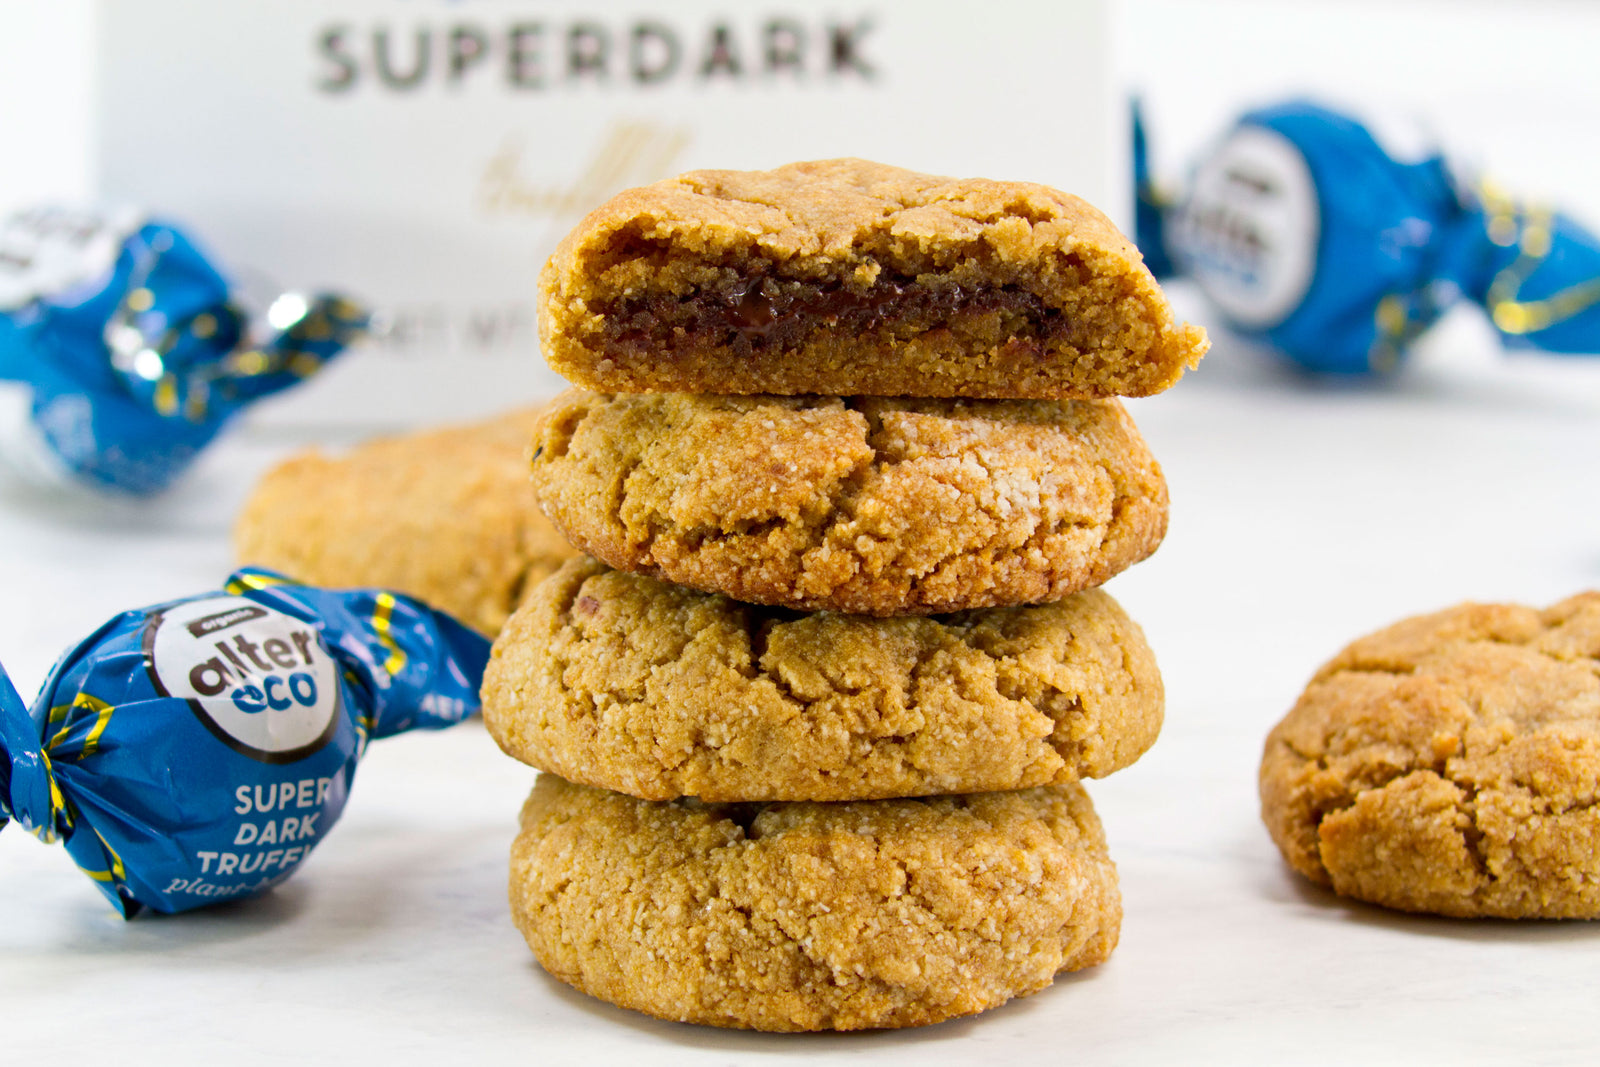 Paleo Superdark Truffle Stuffed Cookies Article